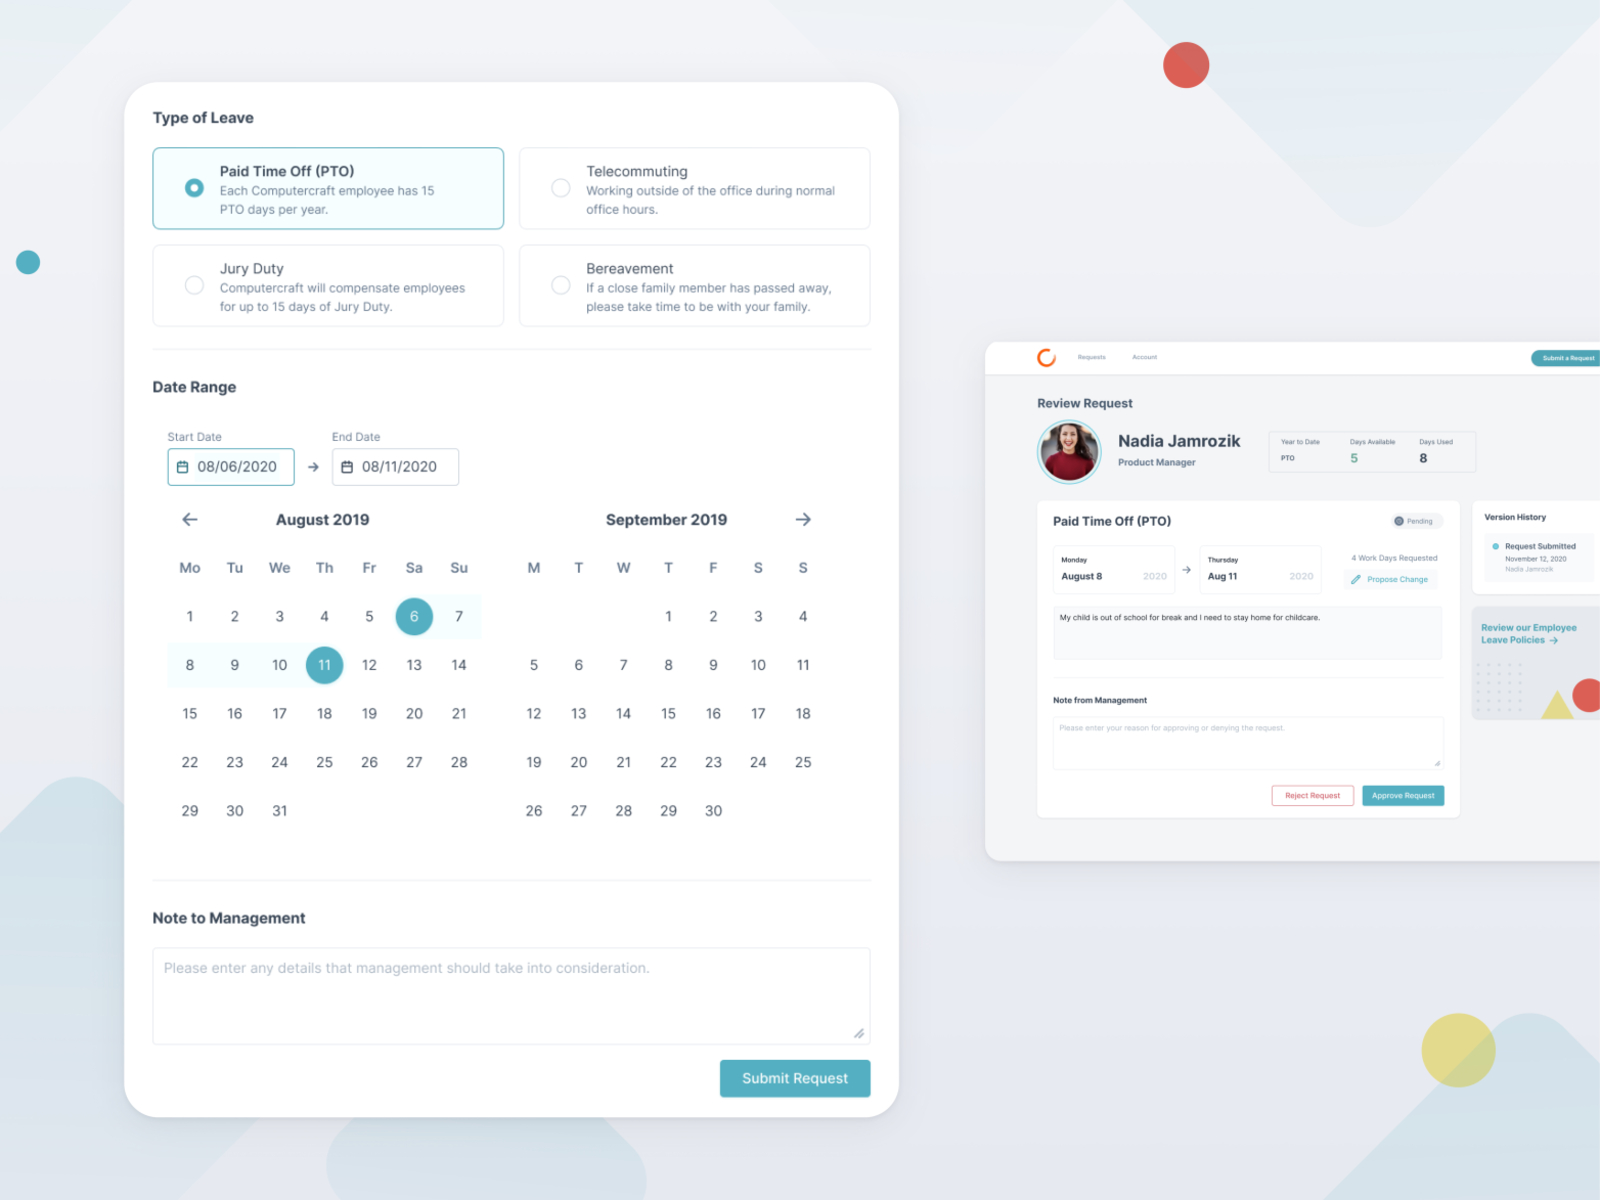 Leave Management System By Nadia Jamrozik For Leverege On Dribbble